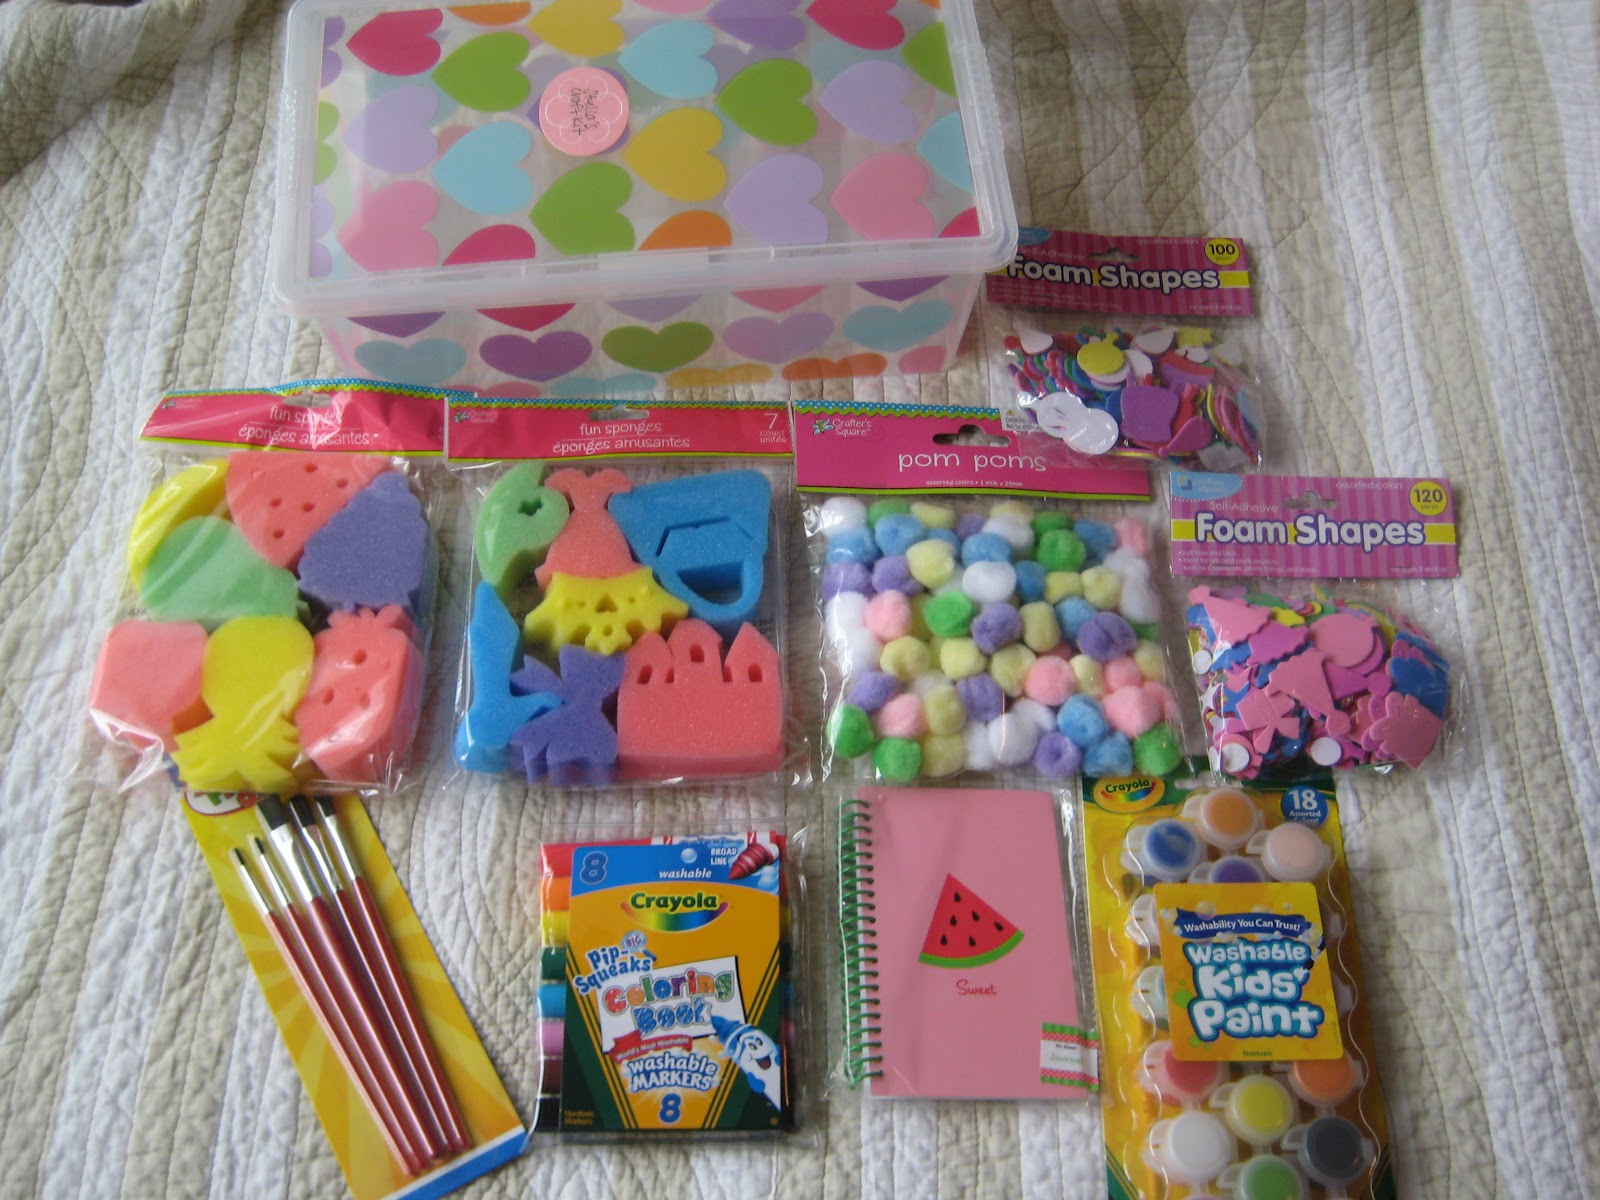 Craft kits for preschoolers -  Washable Non Toxic Truthfully The Whole Craft Kit Idea Came To Me When I Saw Those Stinkin Adorable Fruit Princess Themed Sponge Stamps